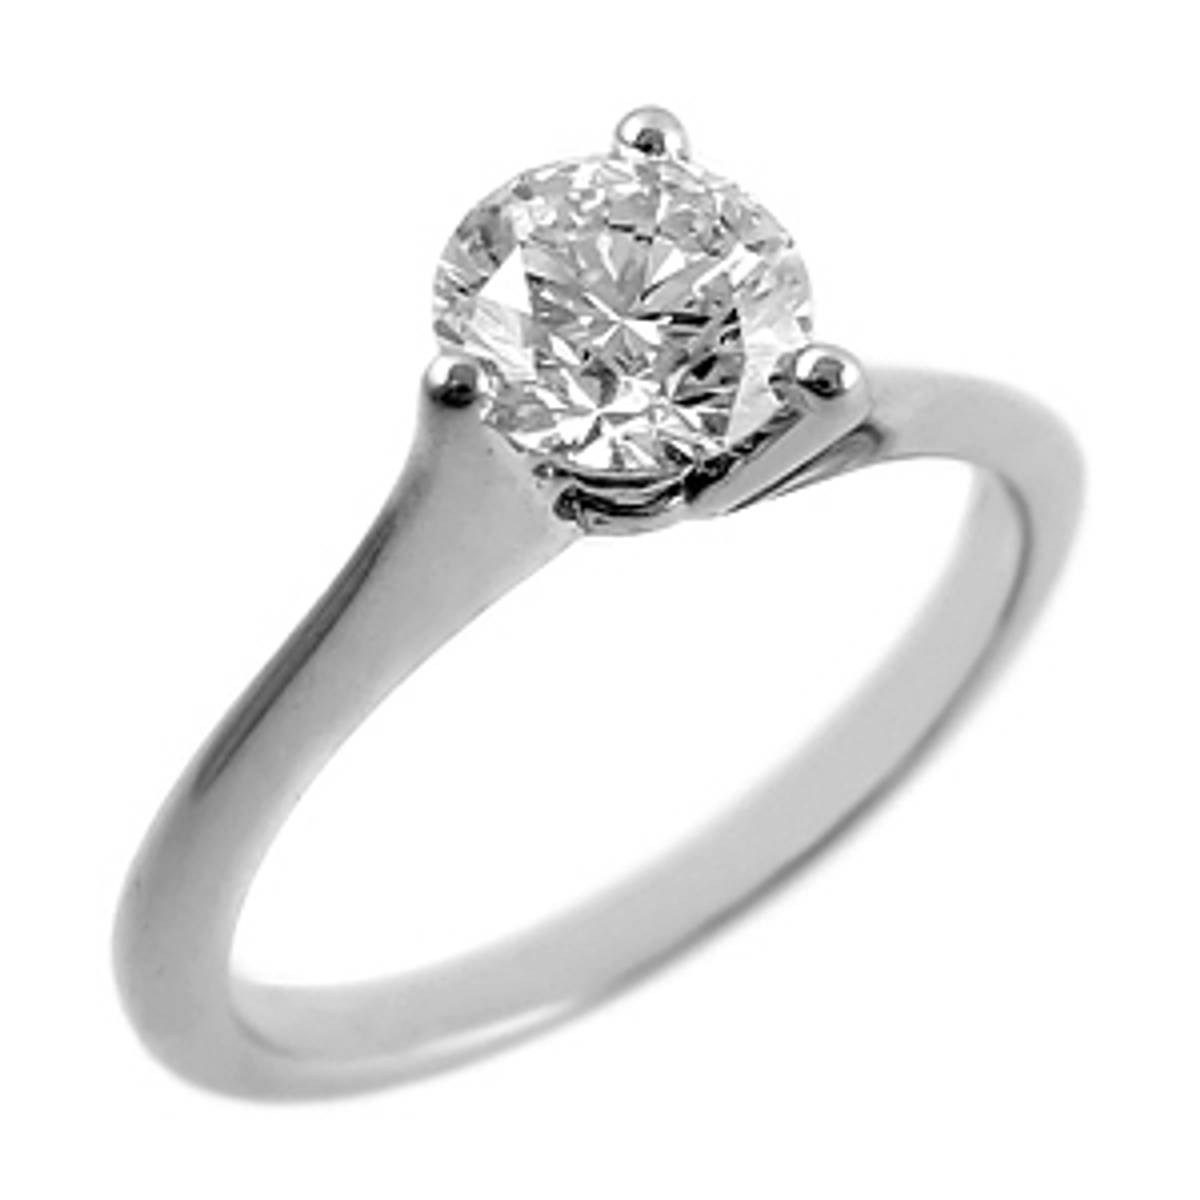 0.45ct brilliant diamond engagement solitaire ring set in 18ct white gold